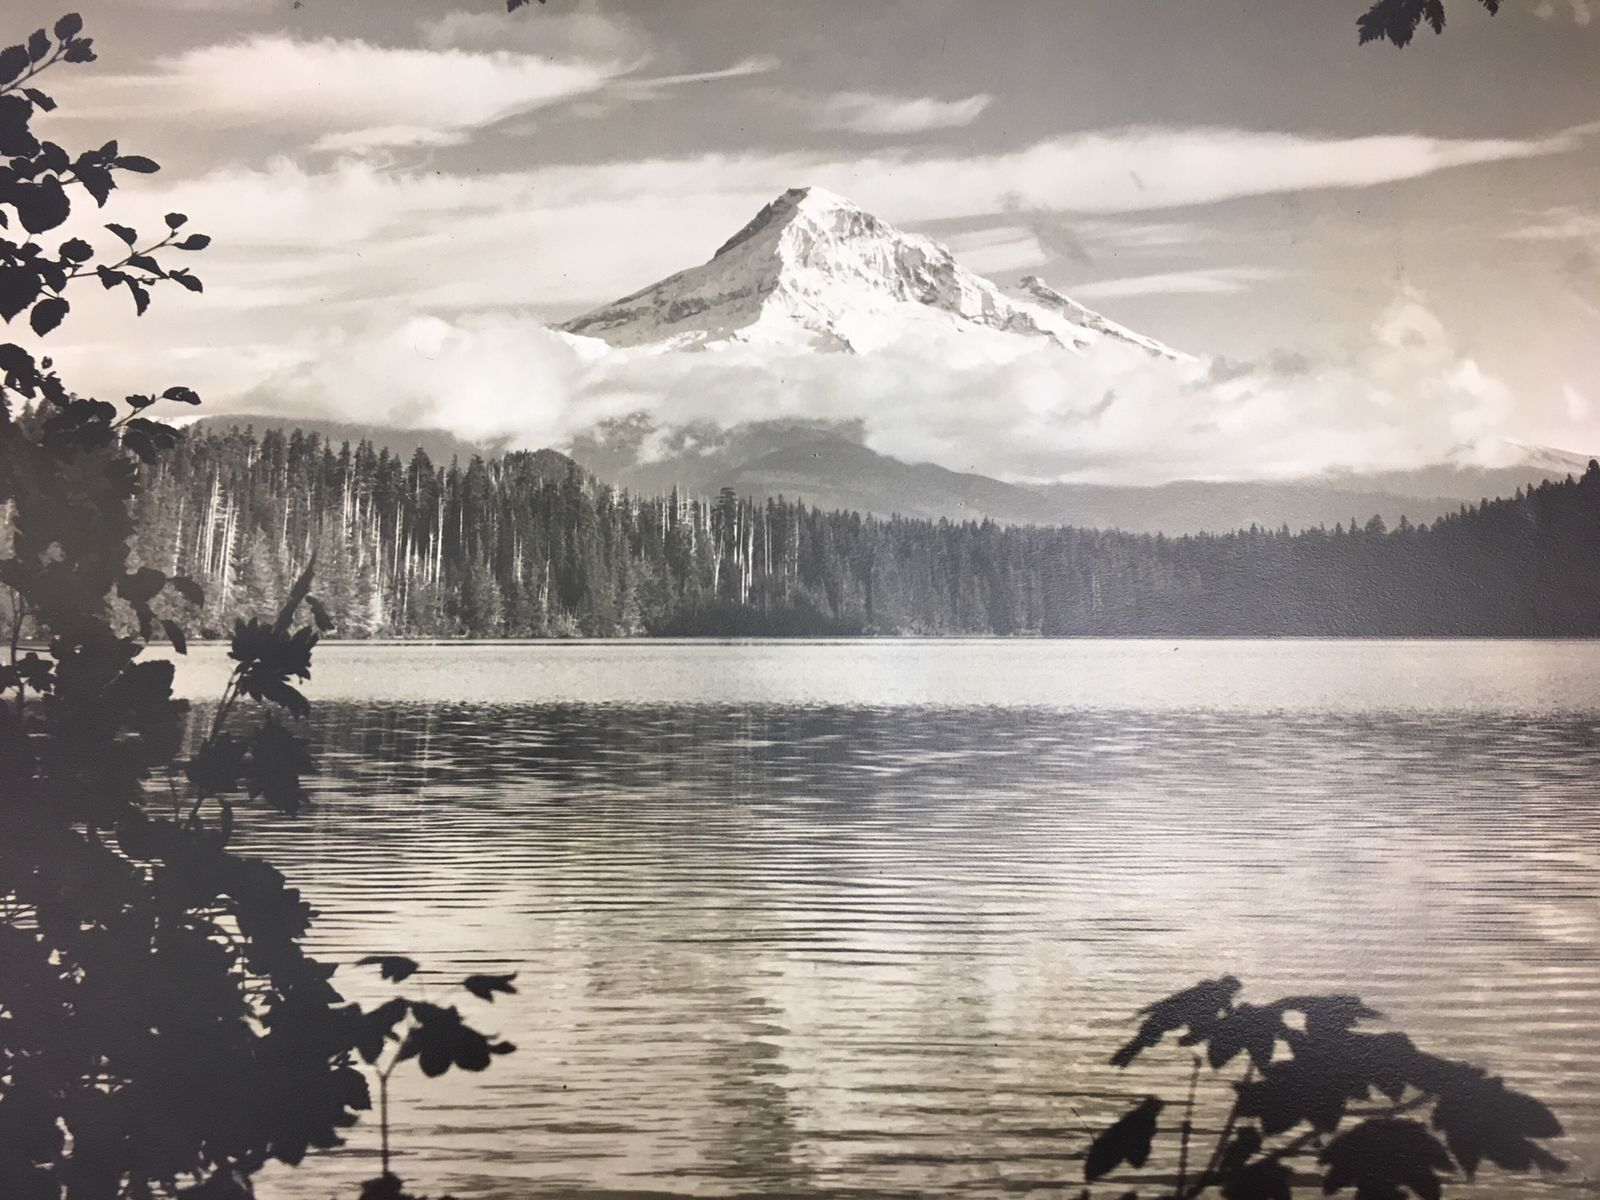 """The Ray Atkeson Photography Collection consists primarily of large-format, black-and-white negatives and large- and medium-format color transparencies, more than 250,000 images in total,"" according to the University of Oregon. (SBG)"